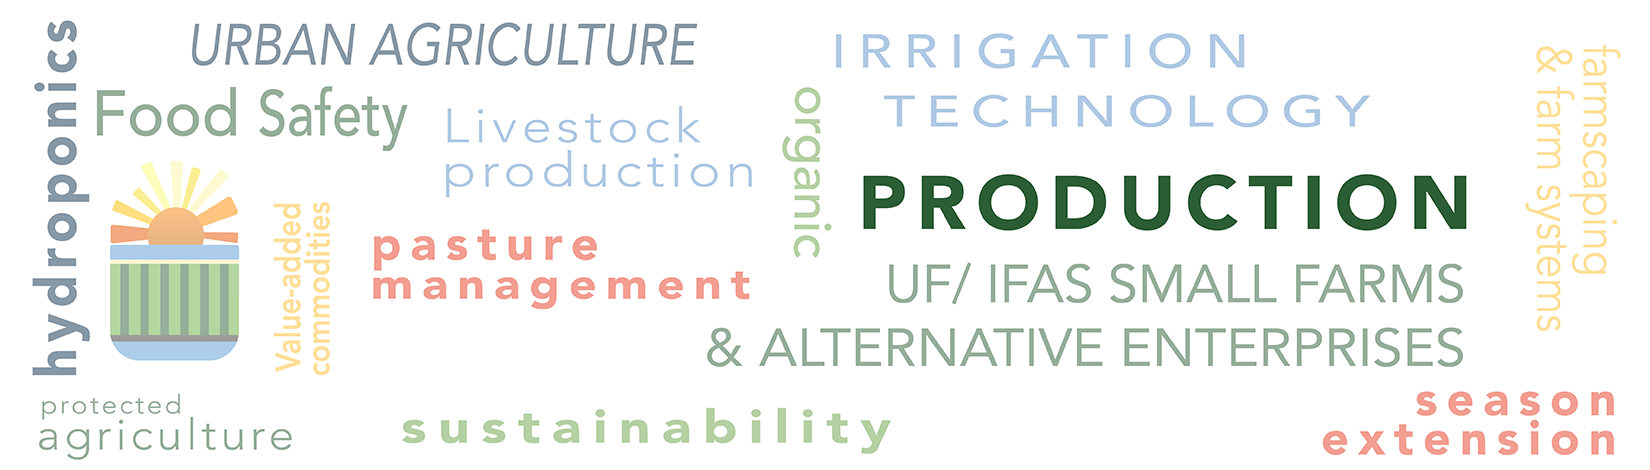 banner displaying the word production surrounded by Urban Agriculture, Irrigation, Technoogy, integrated pest management, business and marketing, hydroponics, food safety, protected agriculture, rergulation and policy, economic impact, livestock production, season extension, sustainability, pasture management, farmscaping and farm systems, postharvest handling, aquaponics